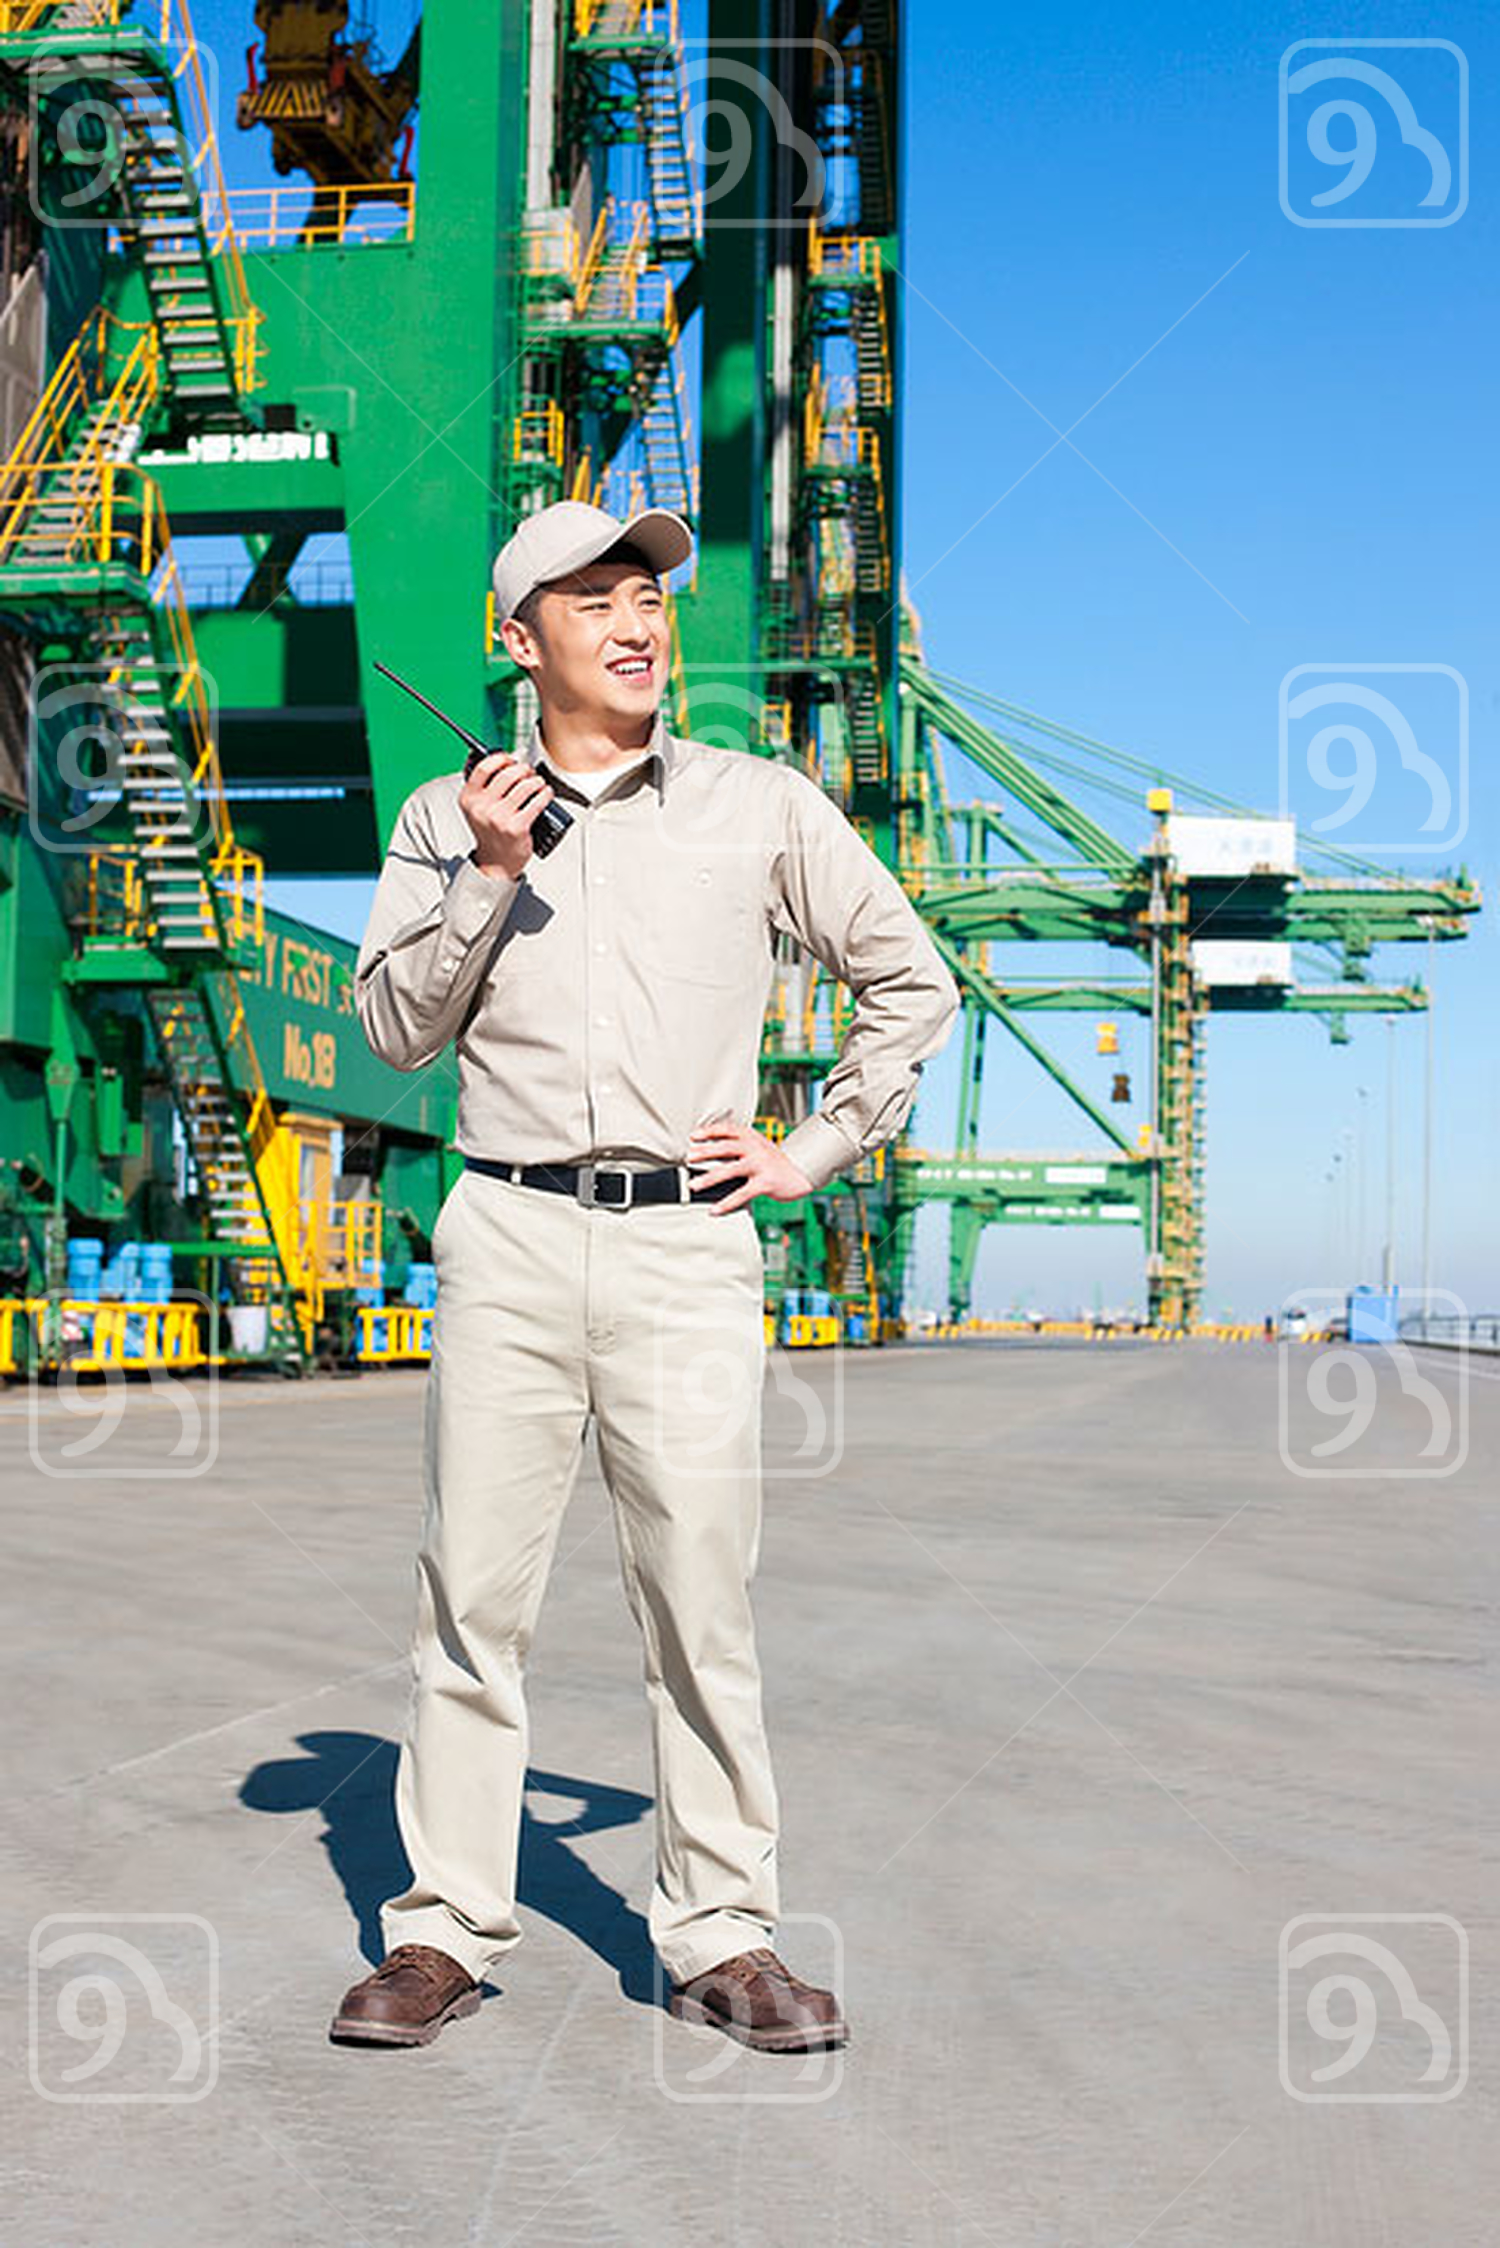 Male Chinese shipping industry worker with walkie talkie and crane in the background